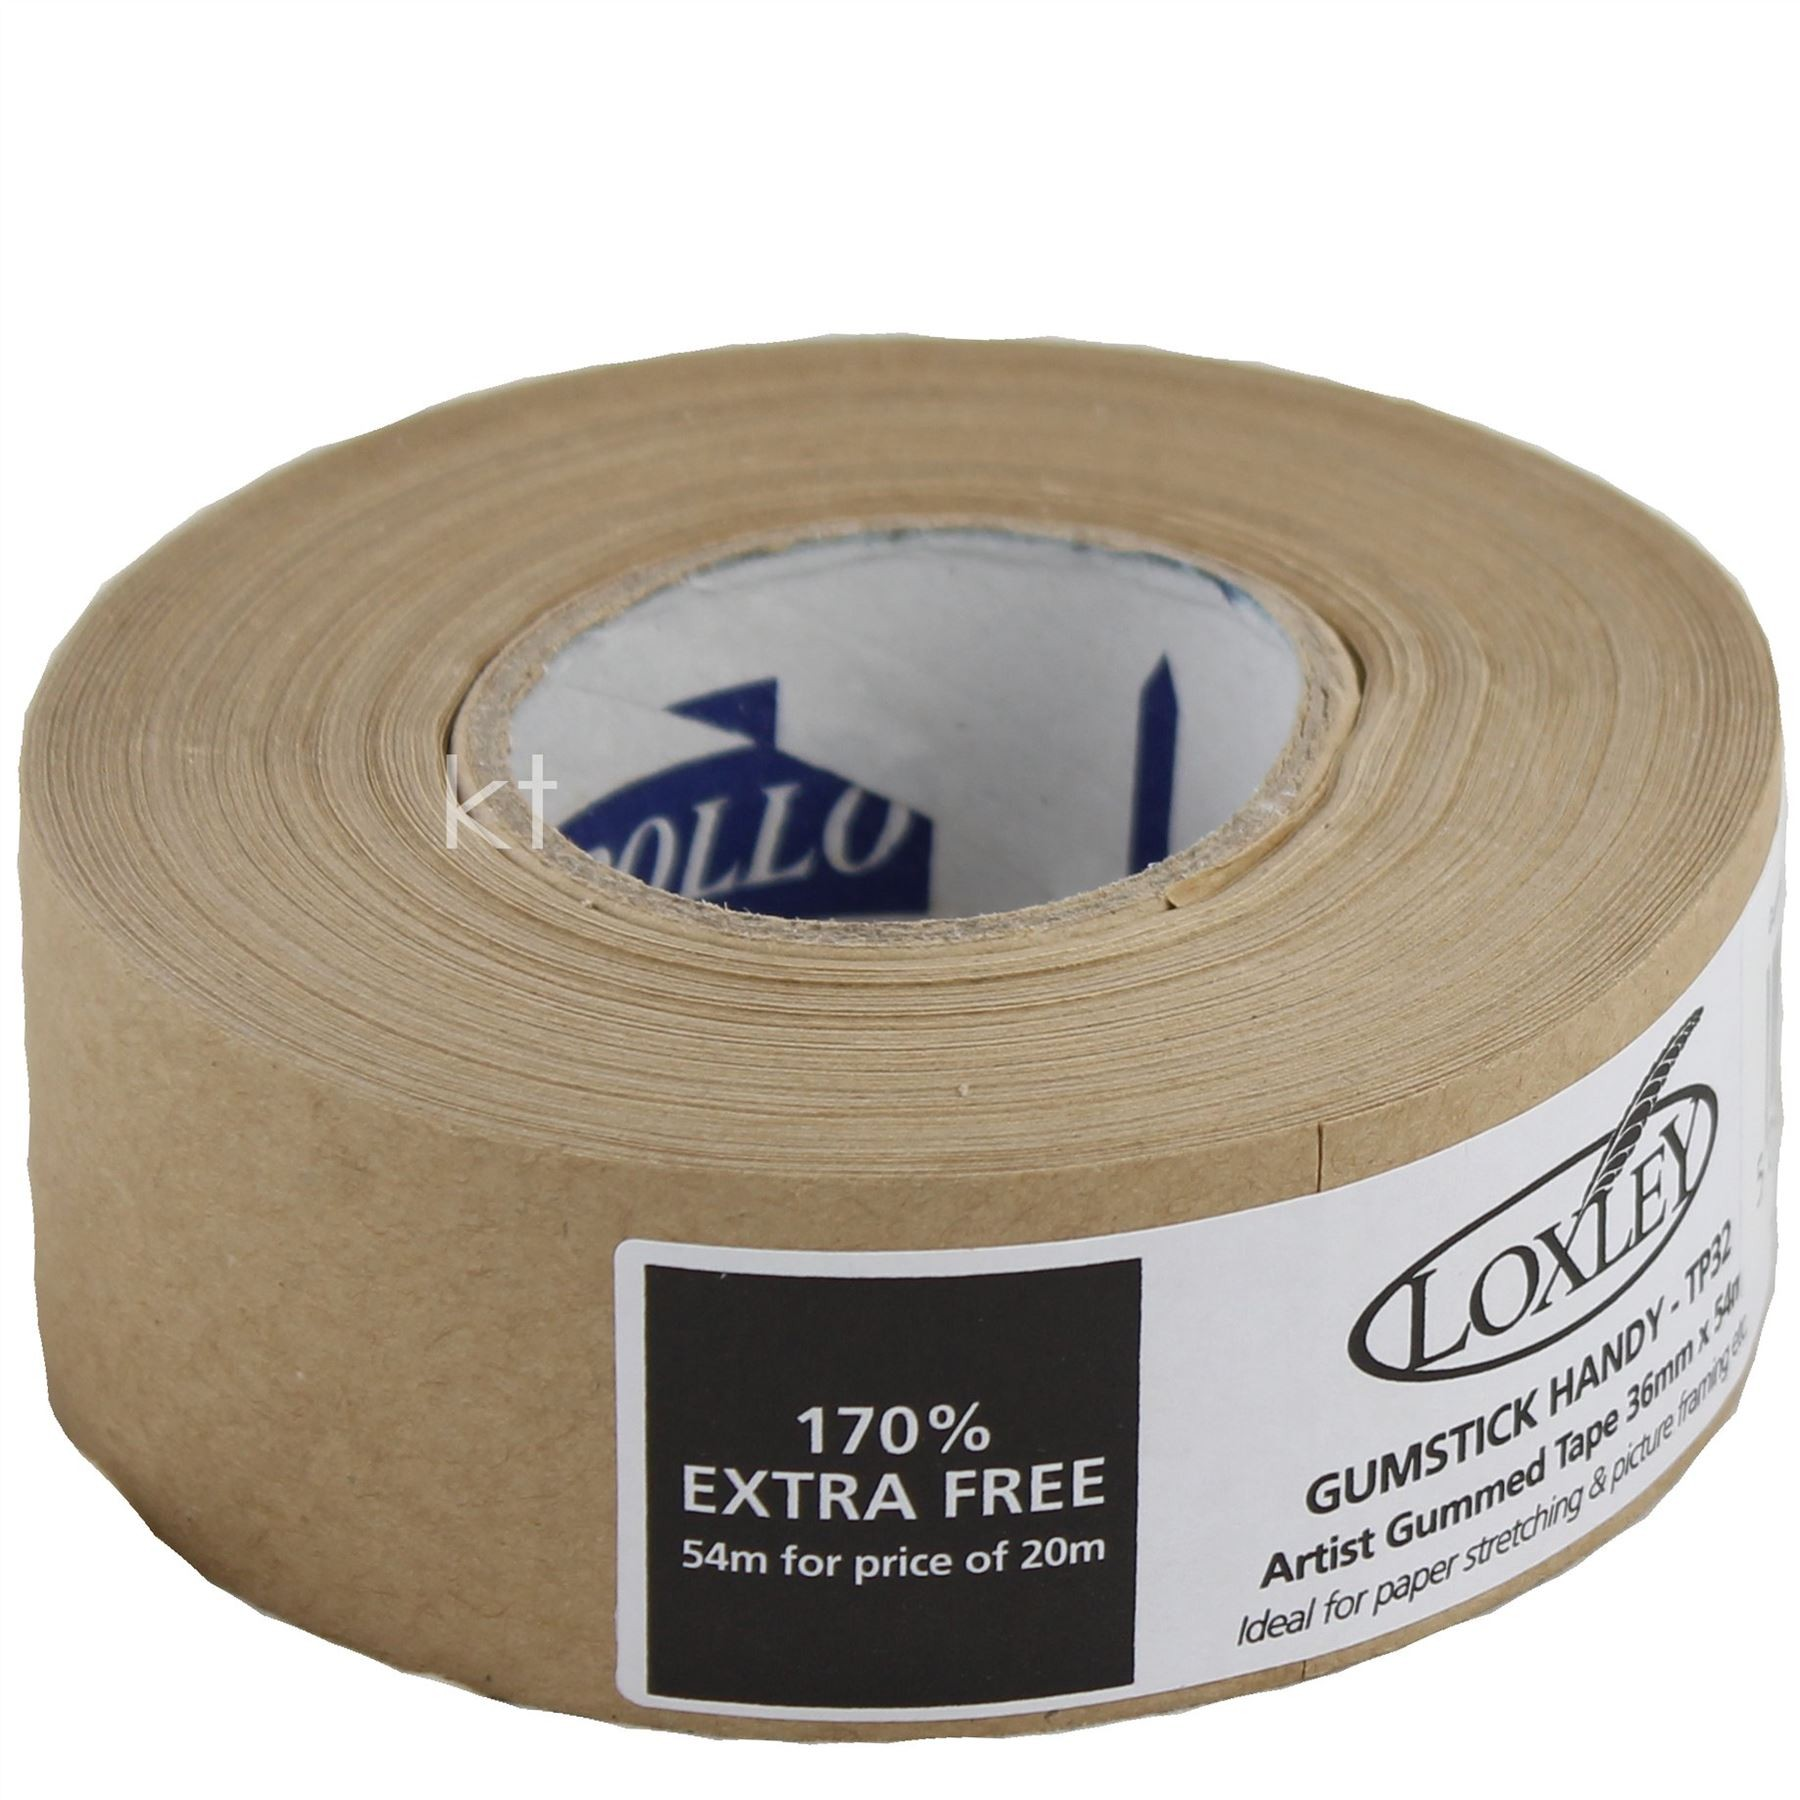 Loxley gummed tape 36mm x 50m